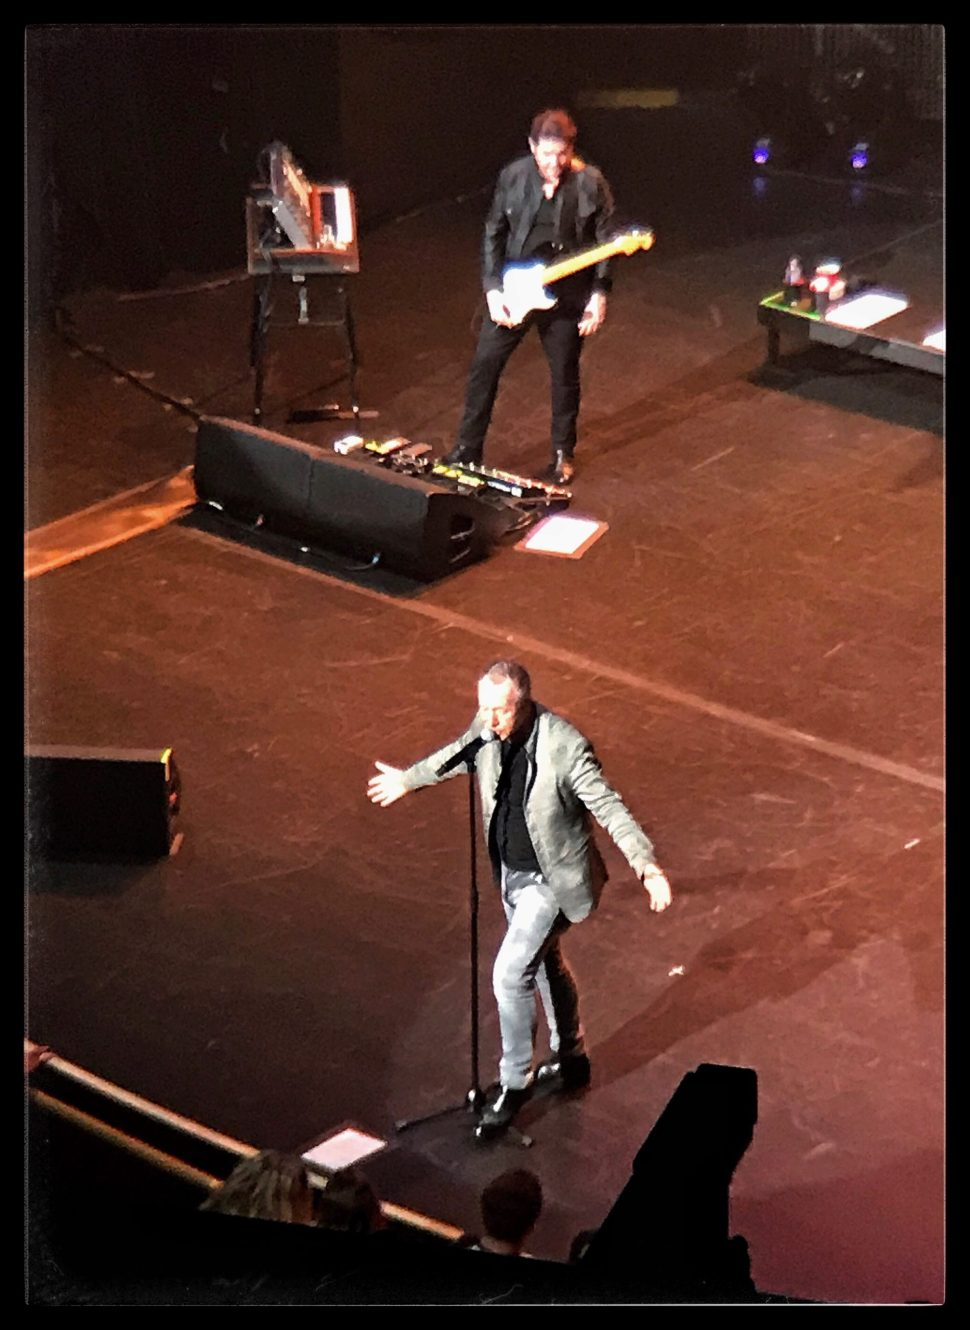 Simple Minds at Beacon Theatre. Photo by Rick Stachura. October 2, 2018.